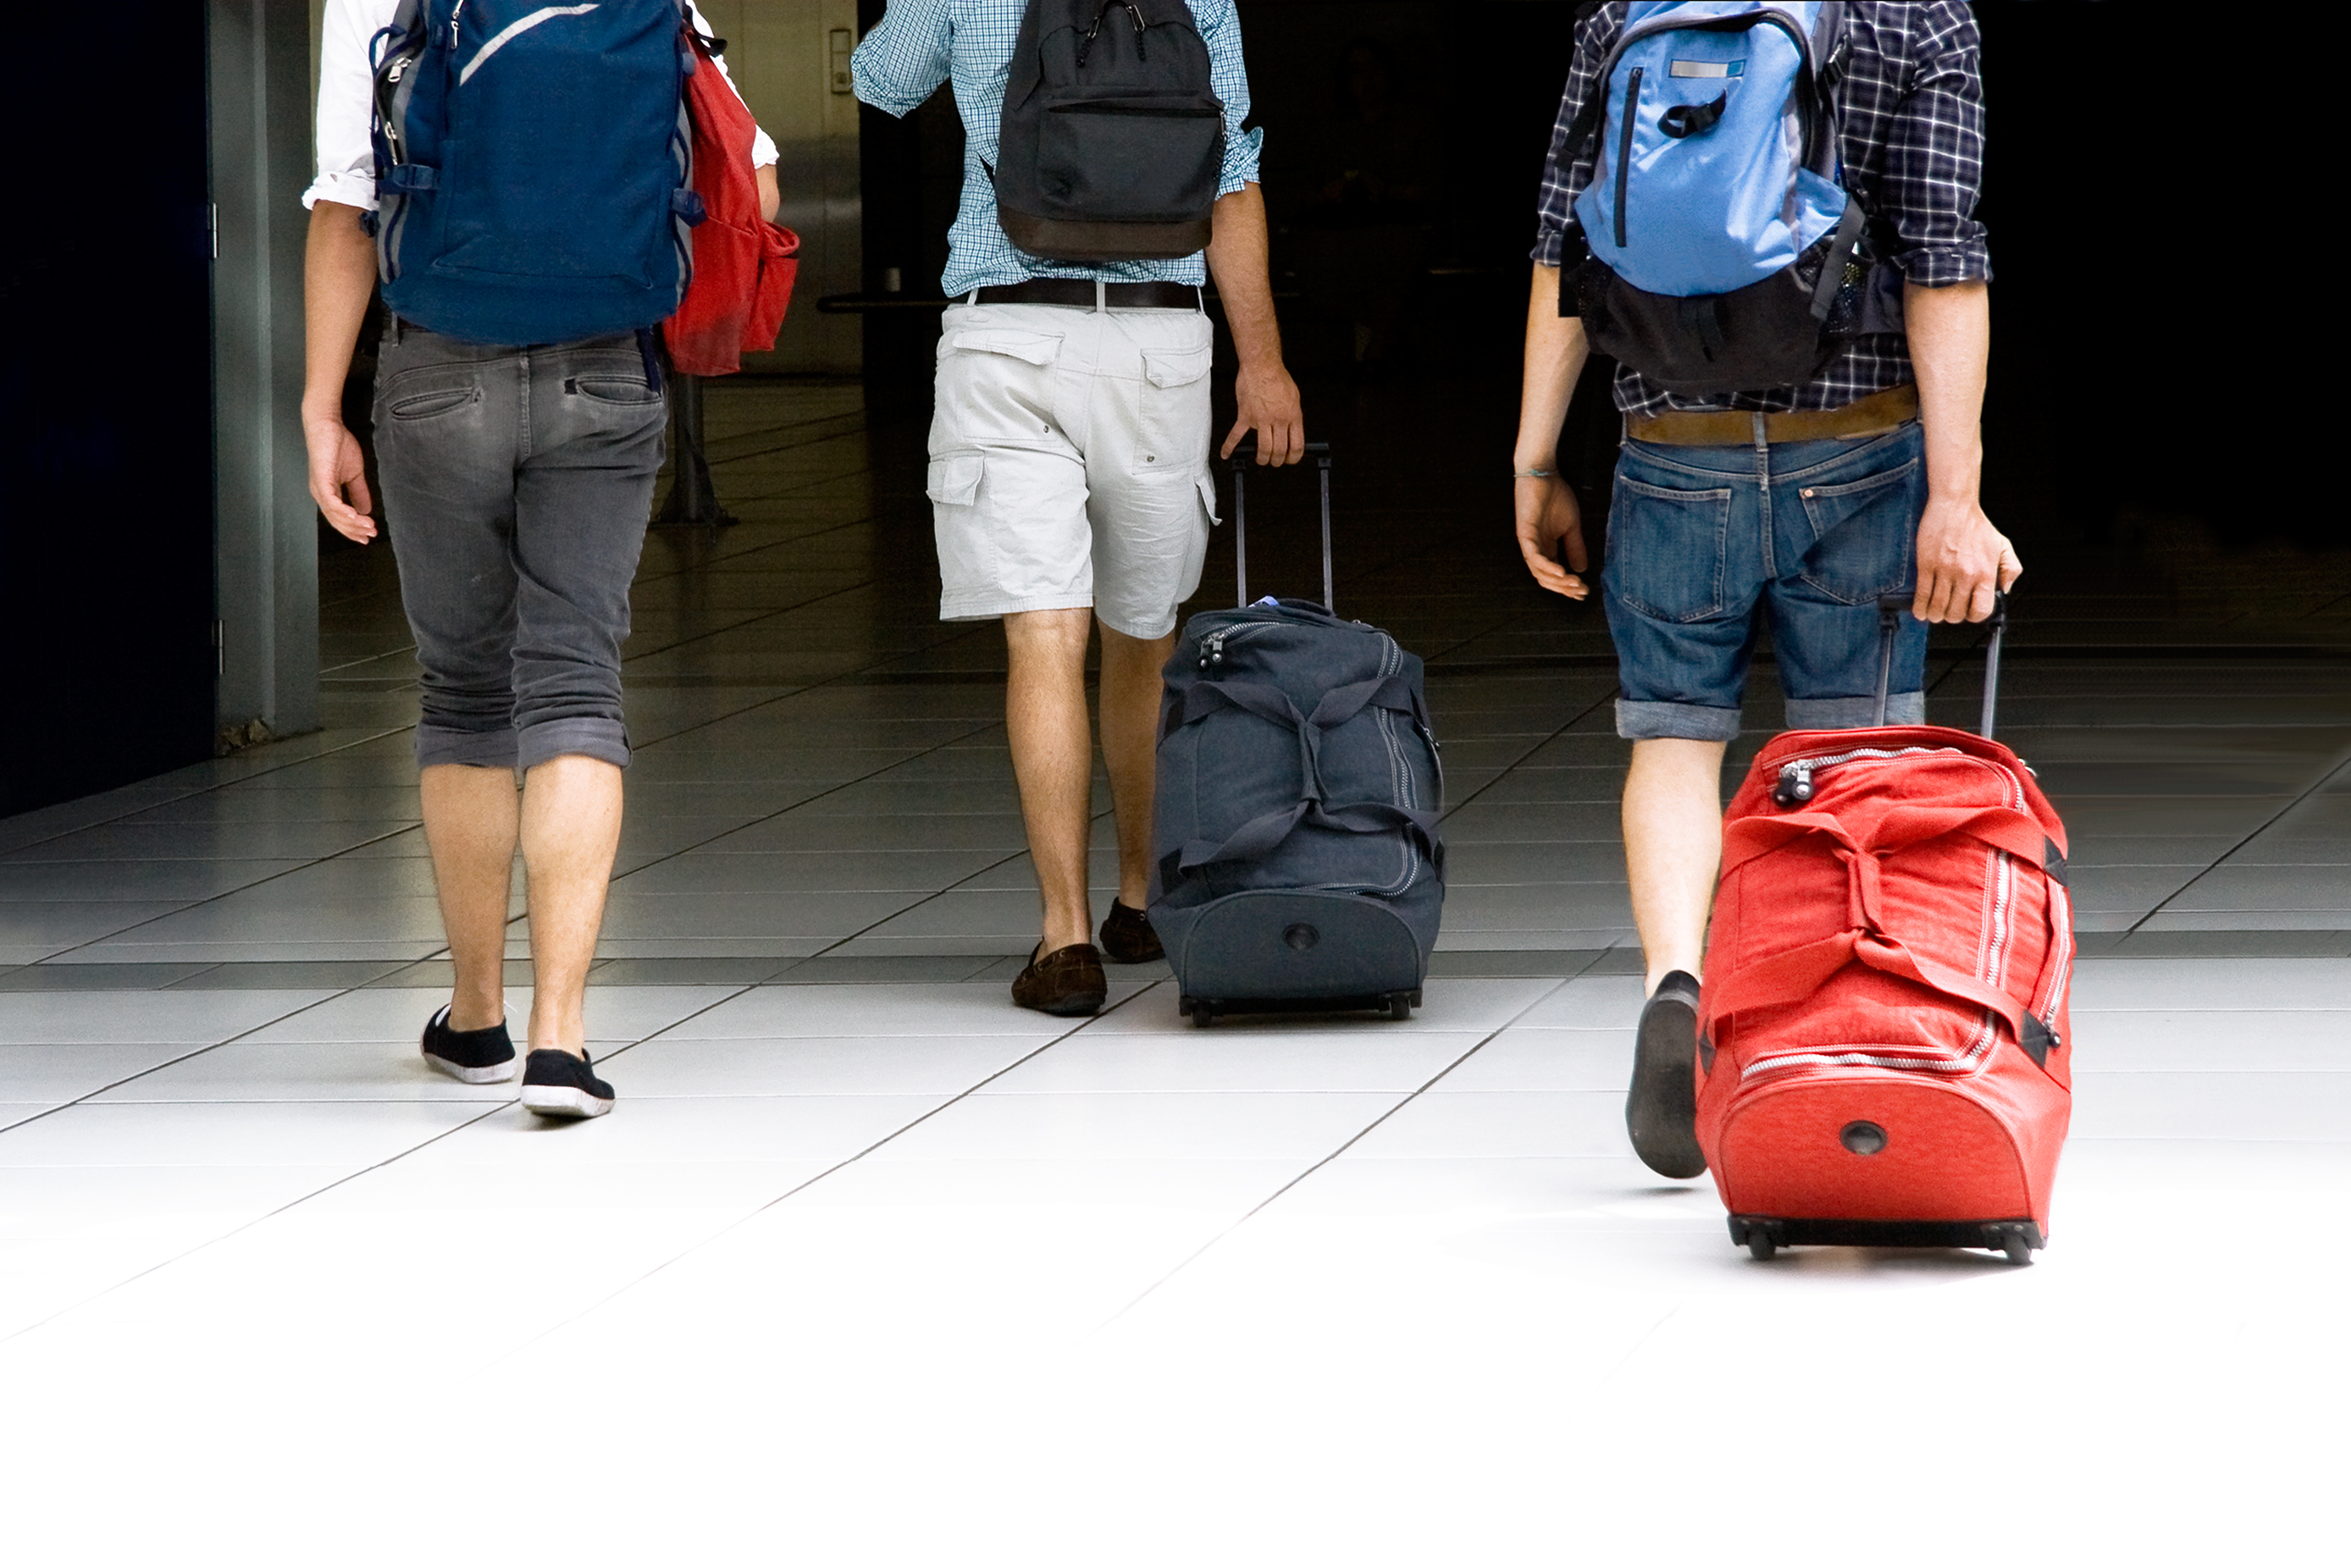 Young people leaving with suitcases and rucksacks